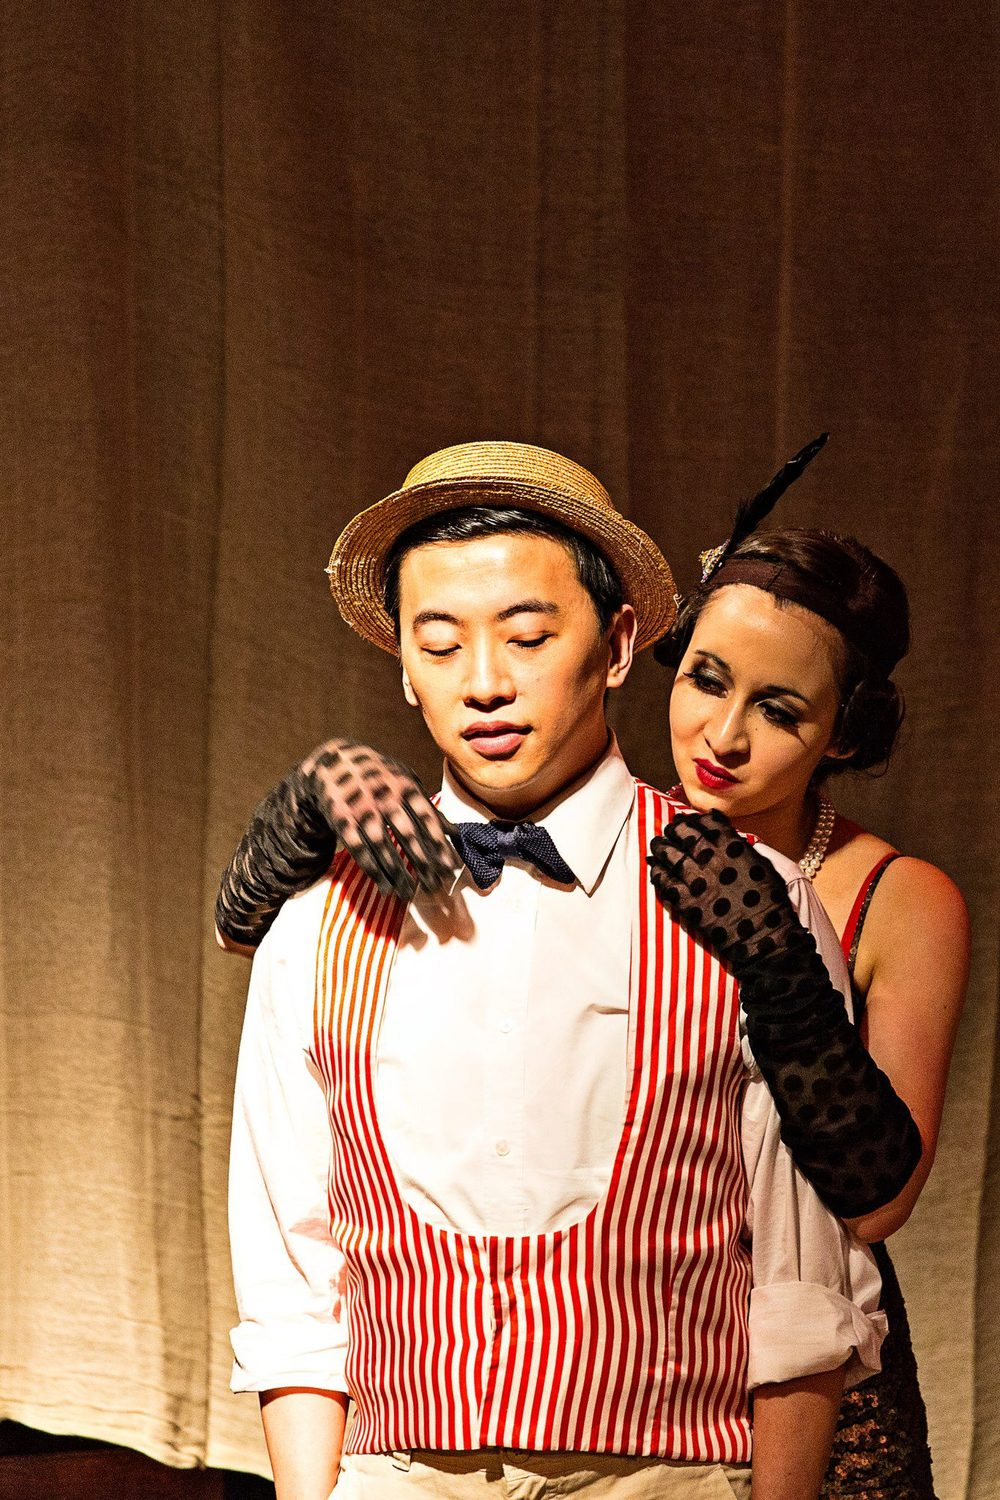 Jenny Smith - Kurt Weill's 'Rise and Fall of the City of Mahagonny'. With Wei-Hsi Hu. King's Opera, March 2013. Photograph © KCL Photo Society.